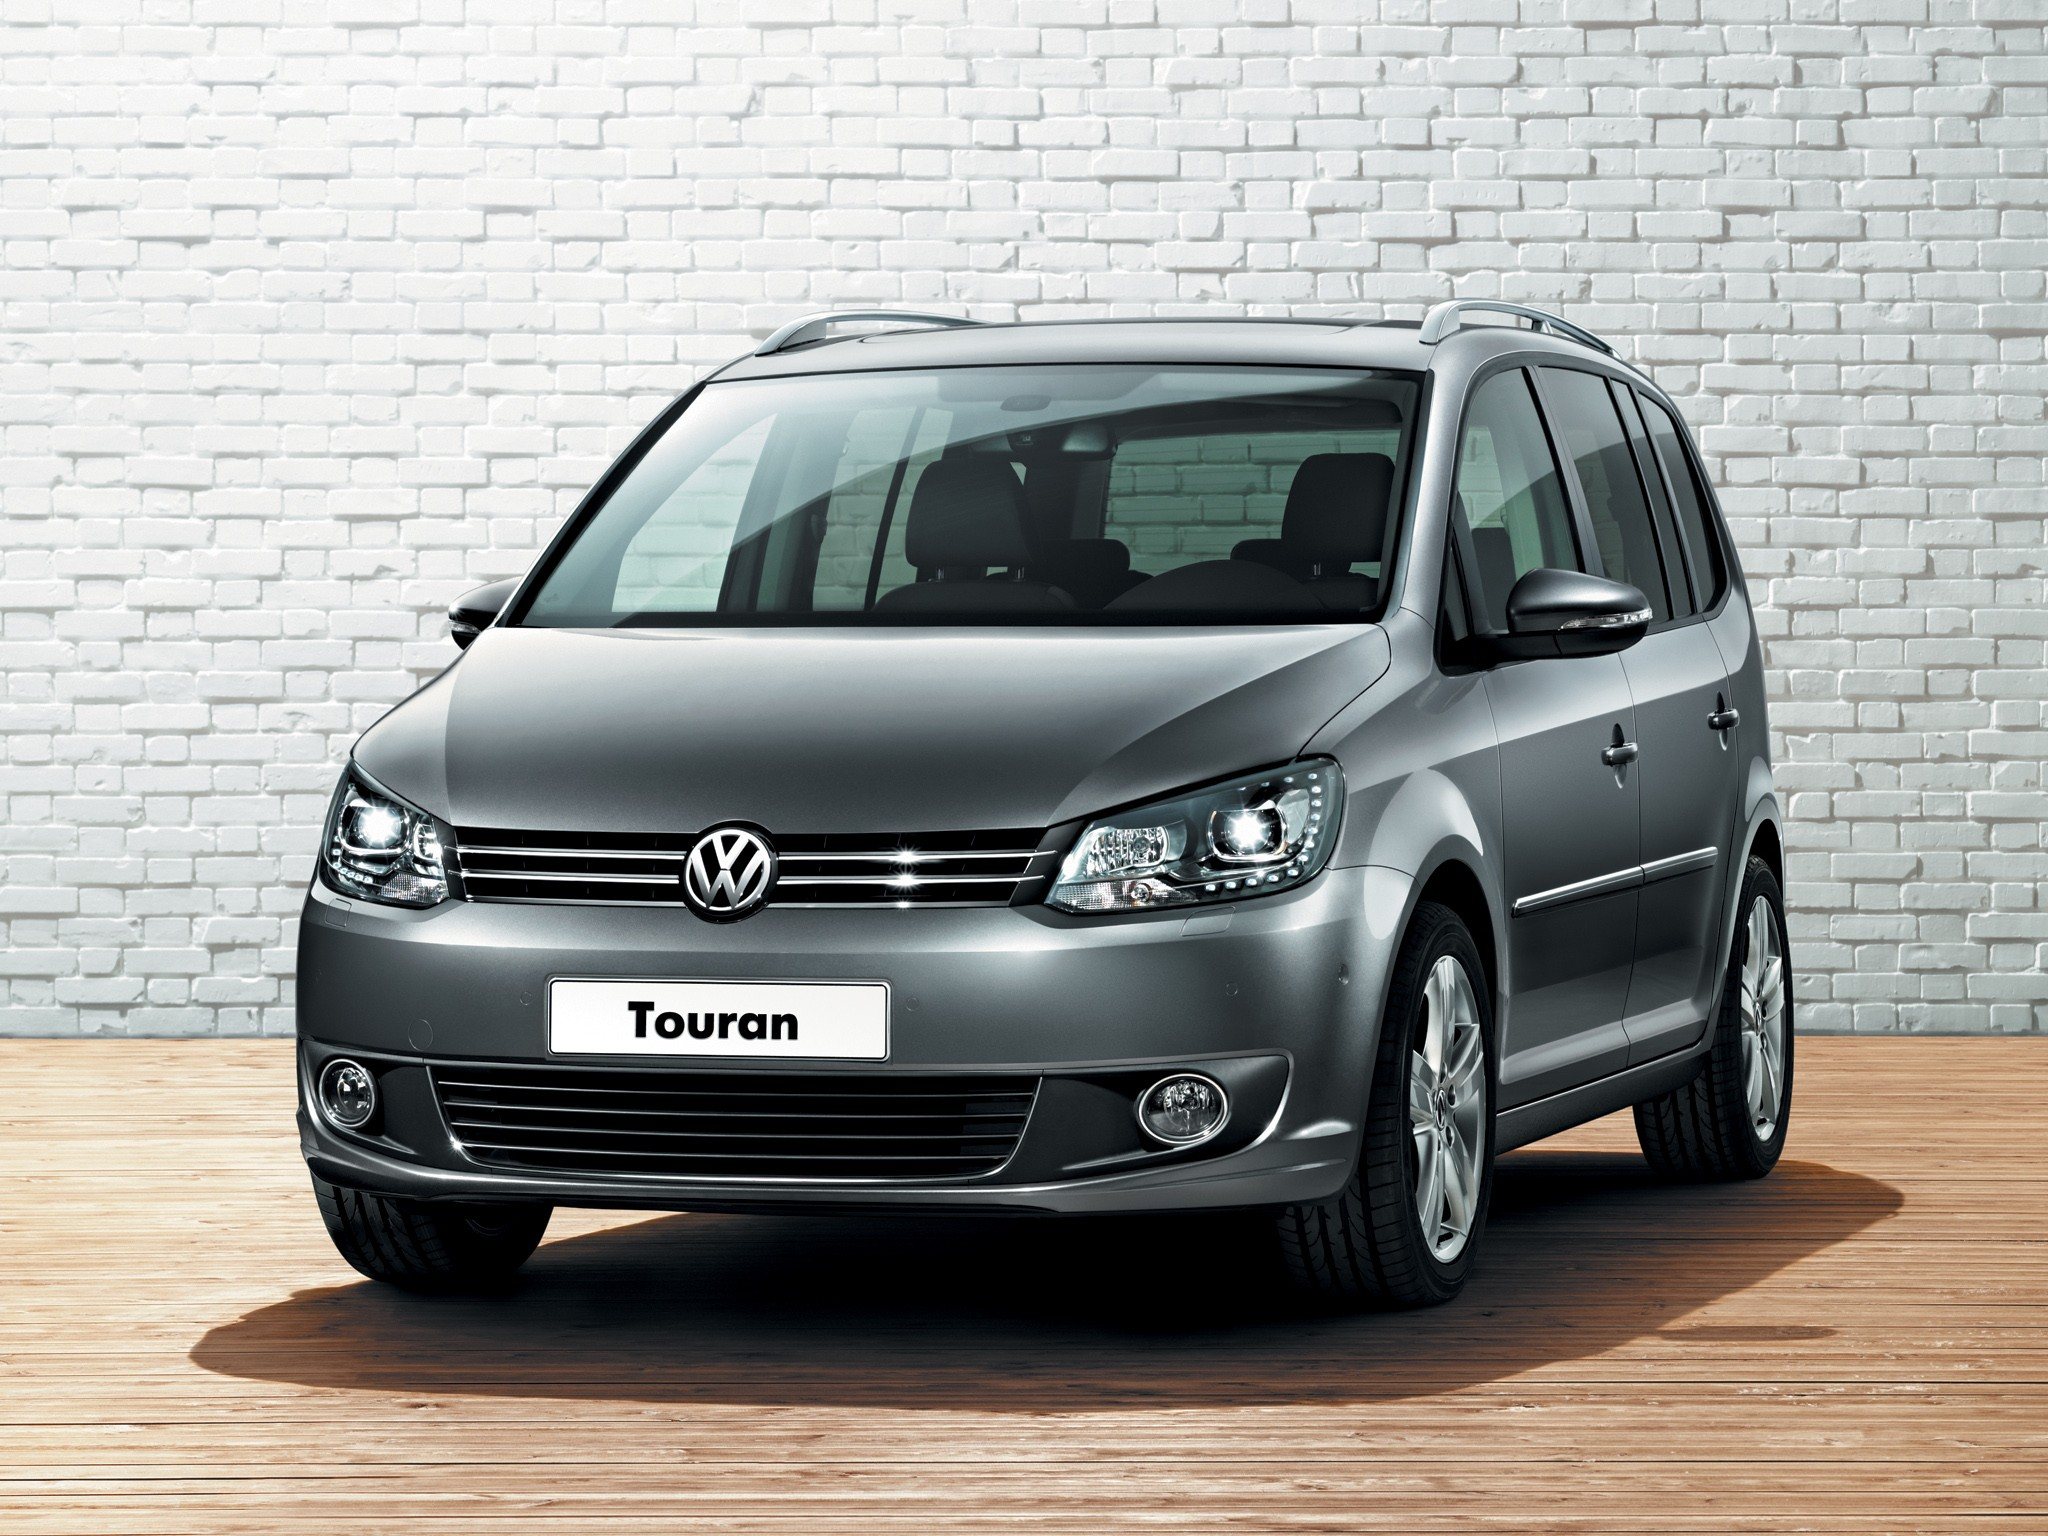 volkswagen touran specs 2010 2011 2012 2013 2014 2015 autoevolution. Black Bedroom Furniture Sets. Home Design Ideas